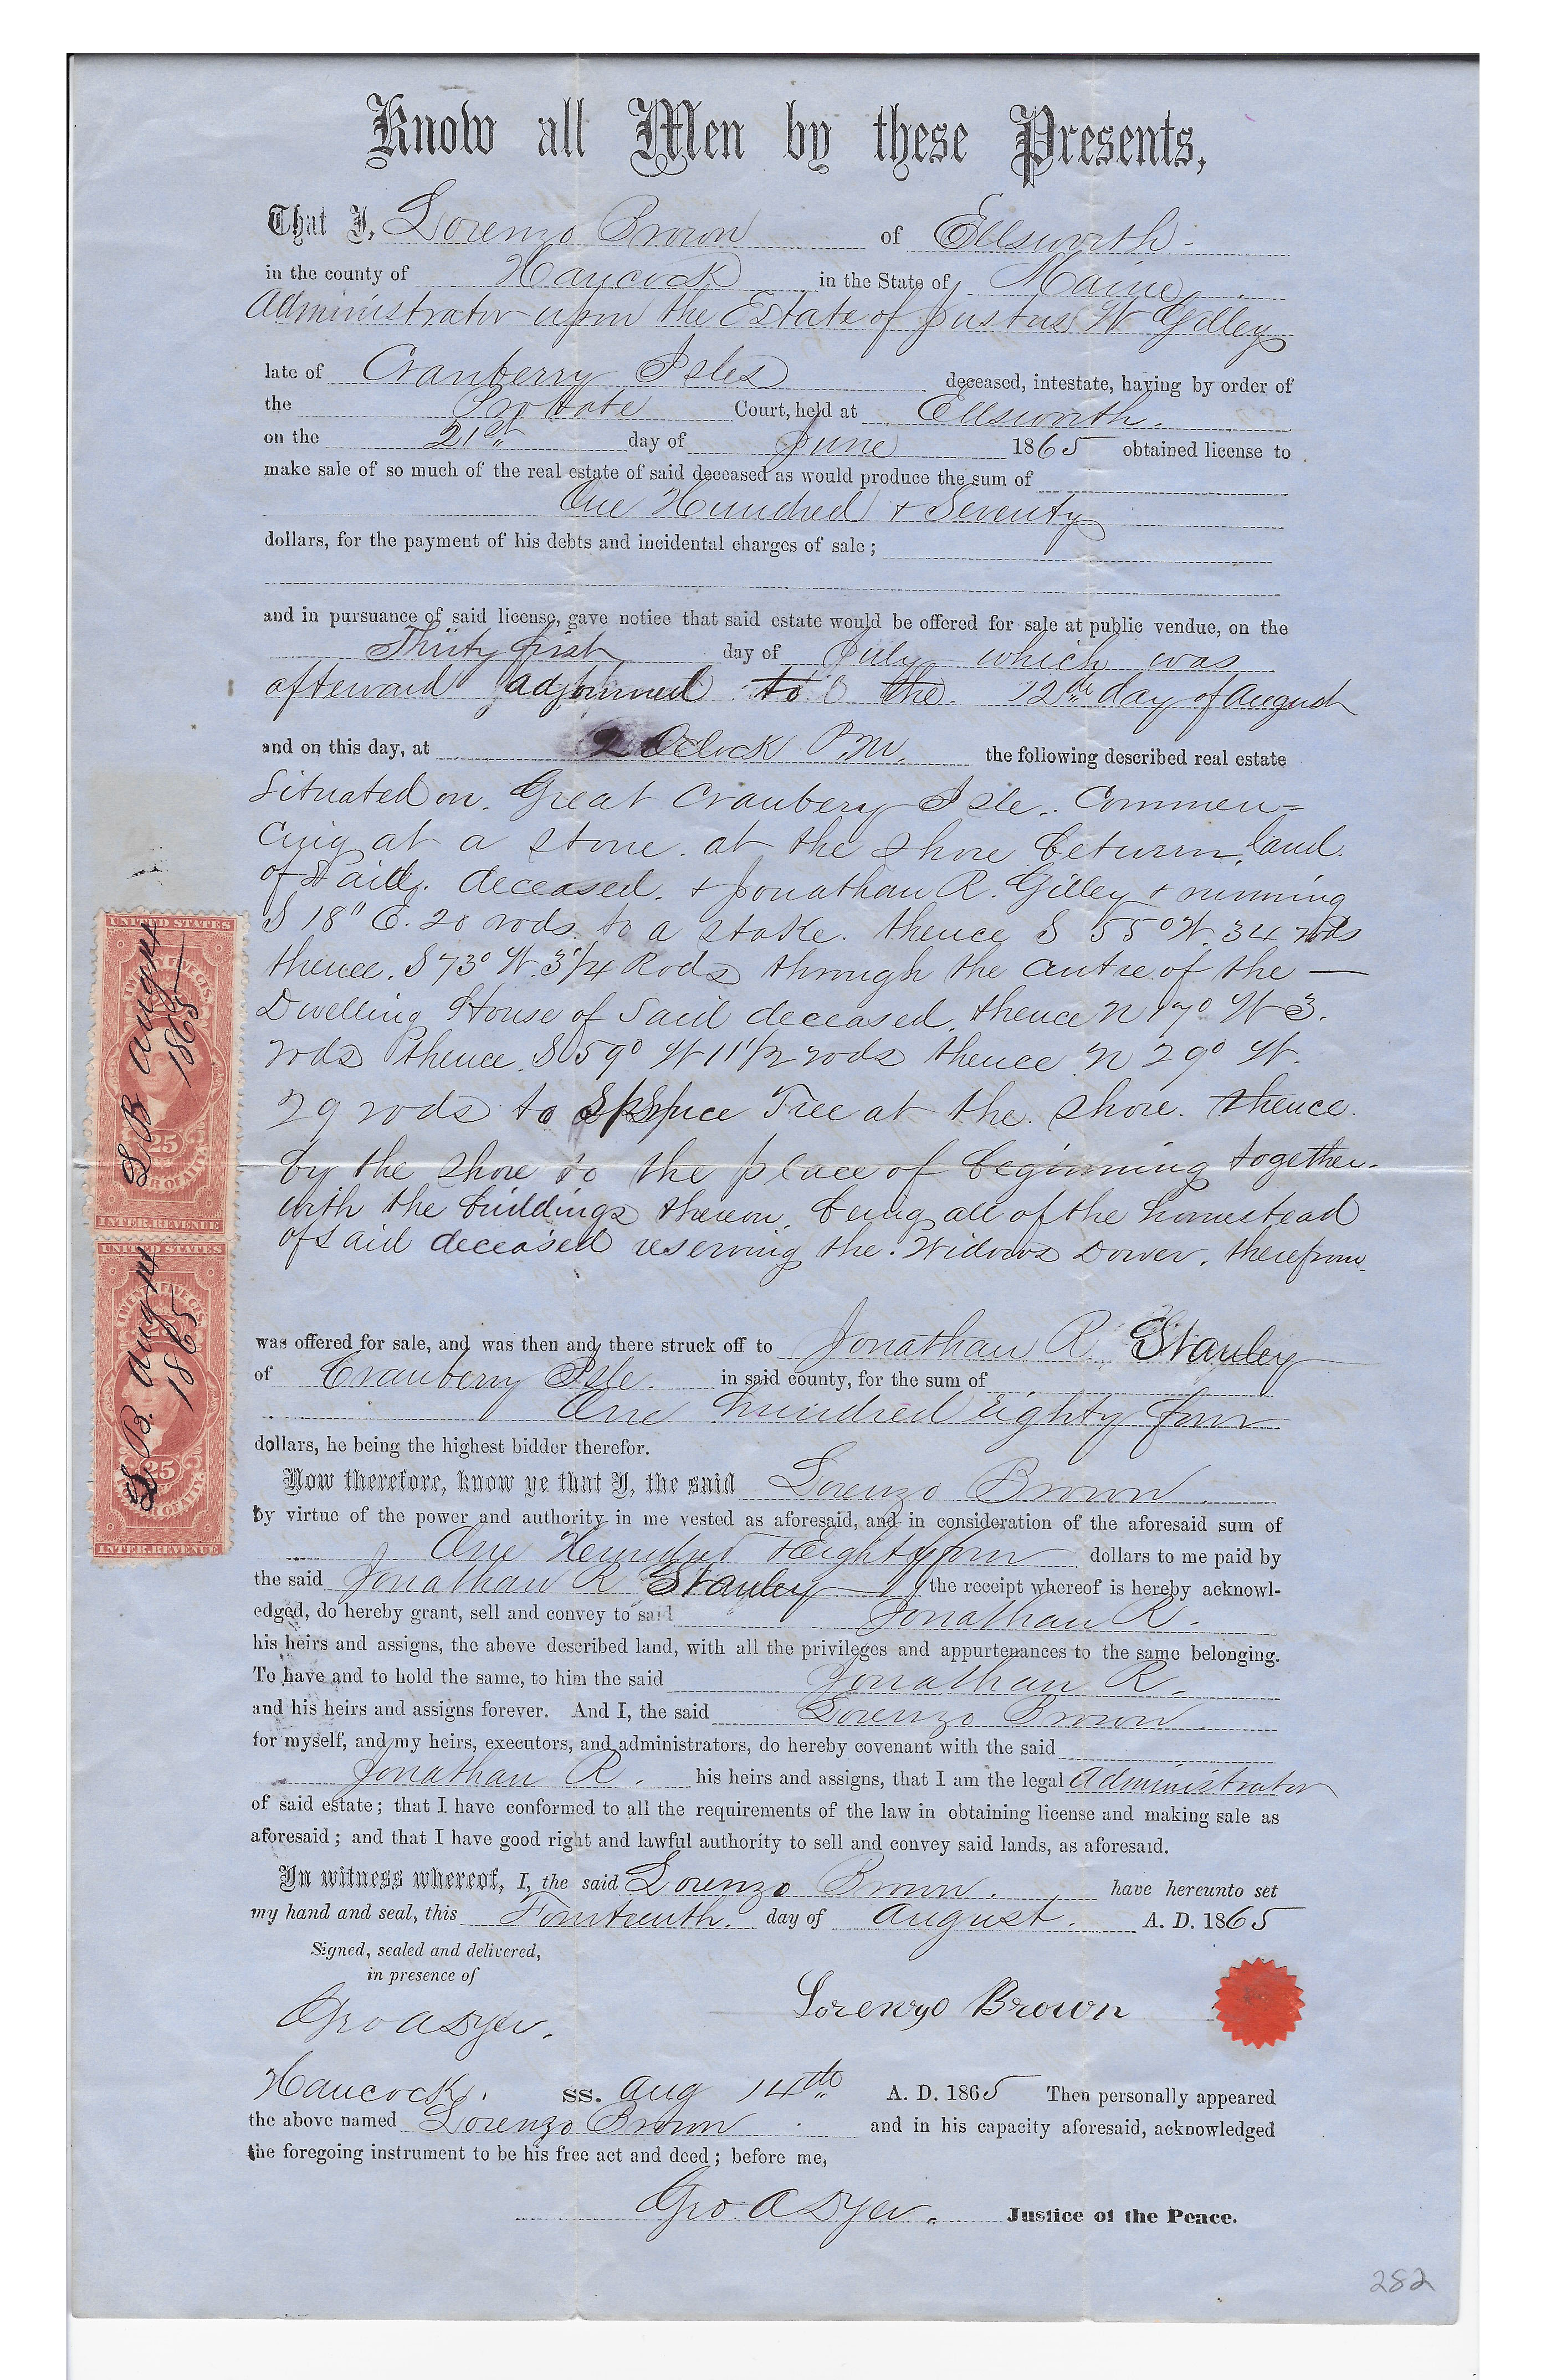 Probate order, with official stamps, sale of estate of Justus W. Gilley